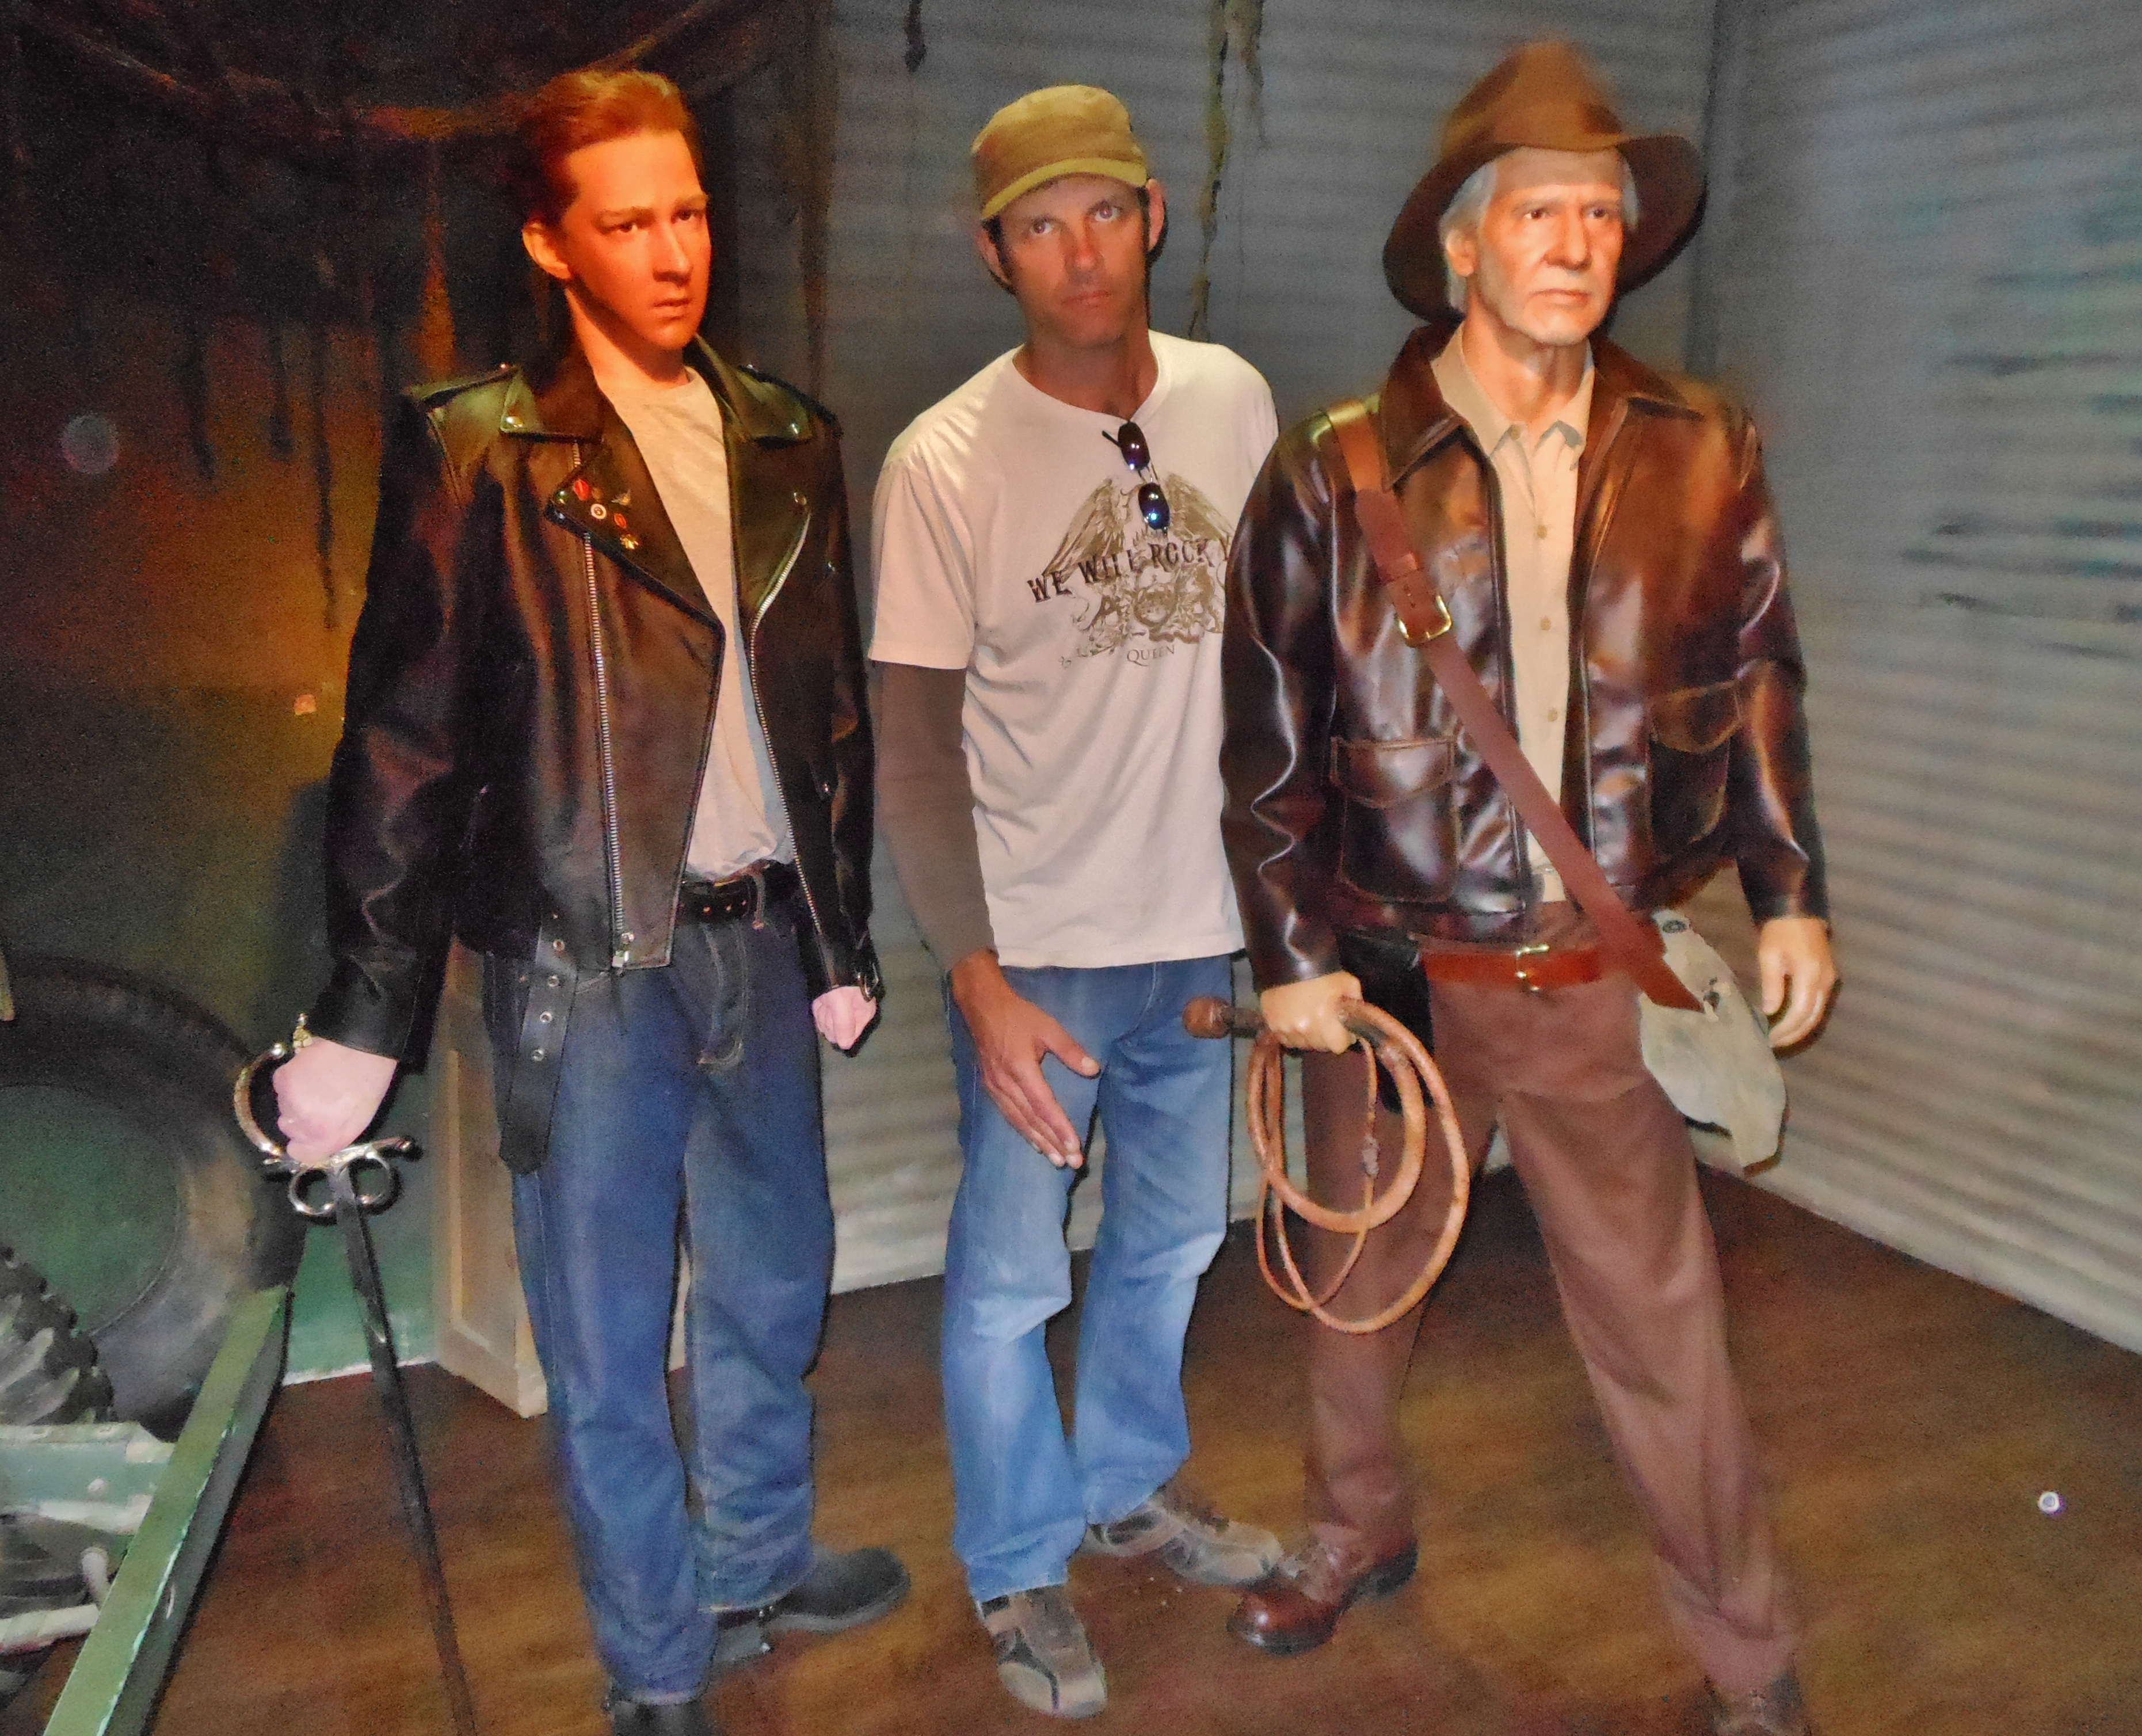 Hollywood wax museum – rain4river